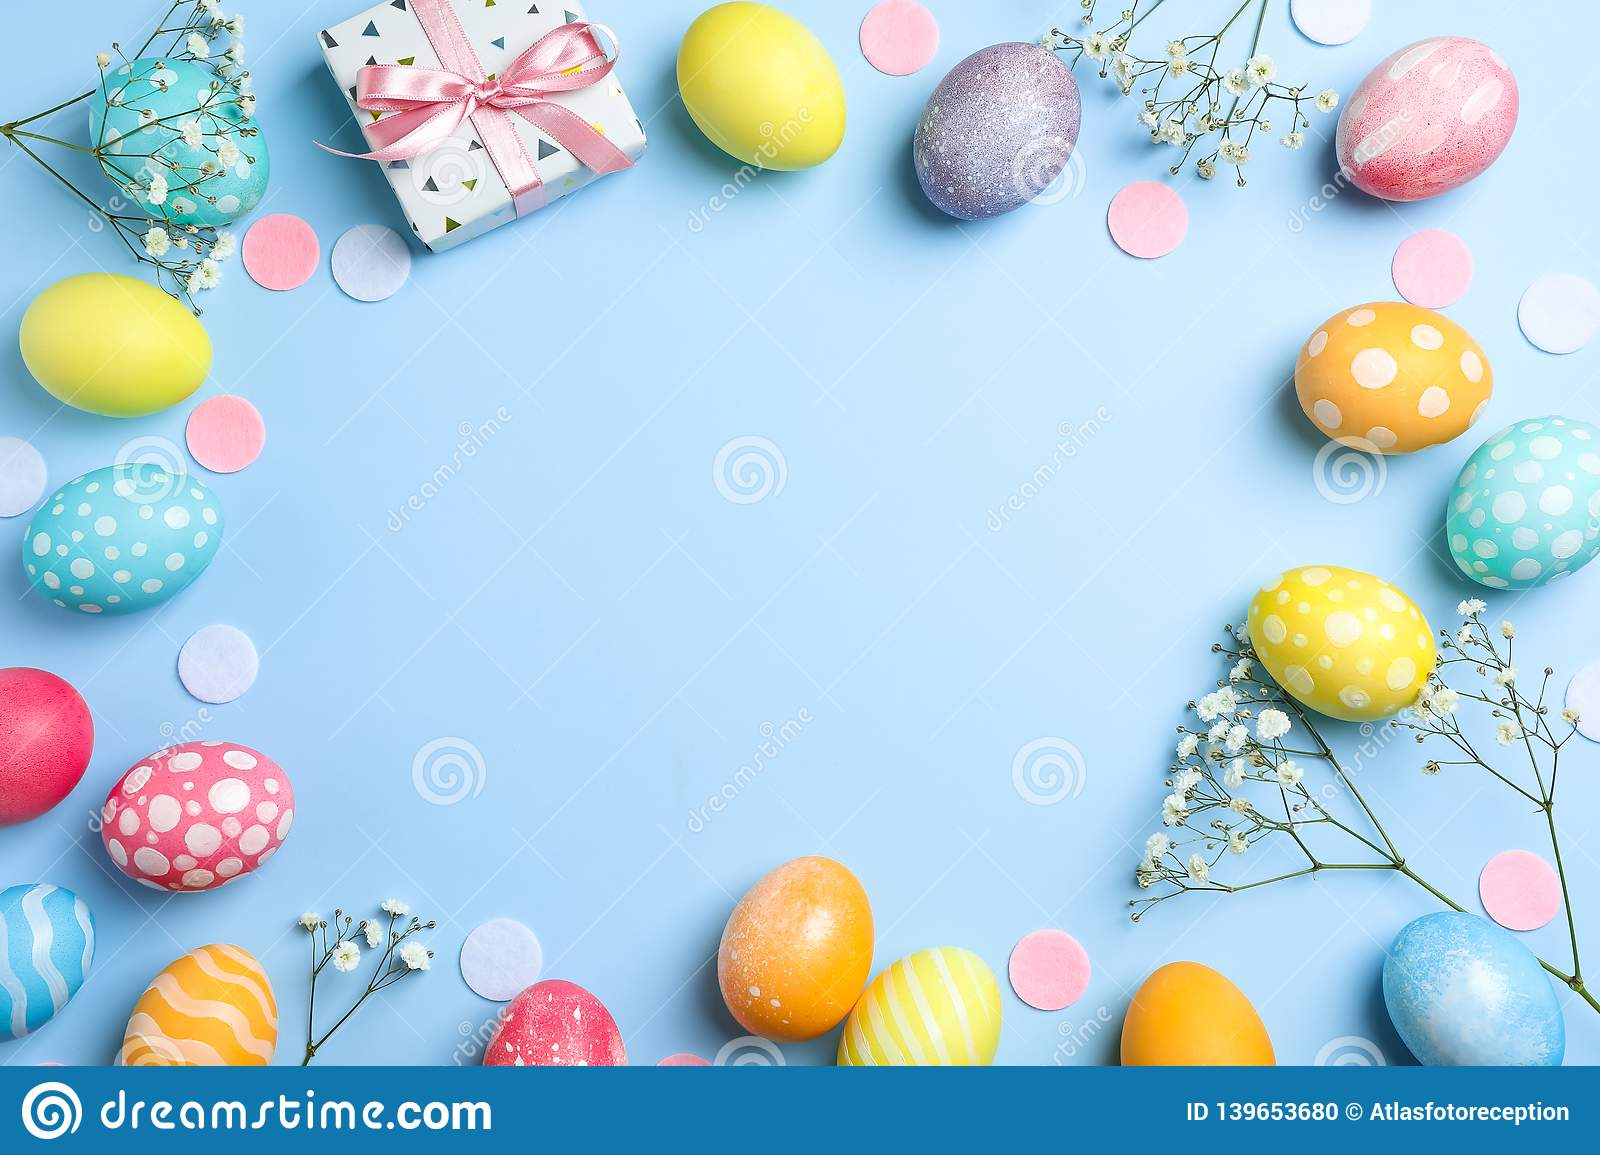 Flat lay composition with Easter eggs, present and flowers on color background, space for text